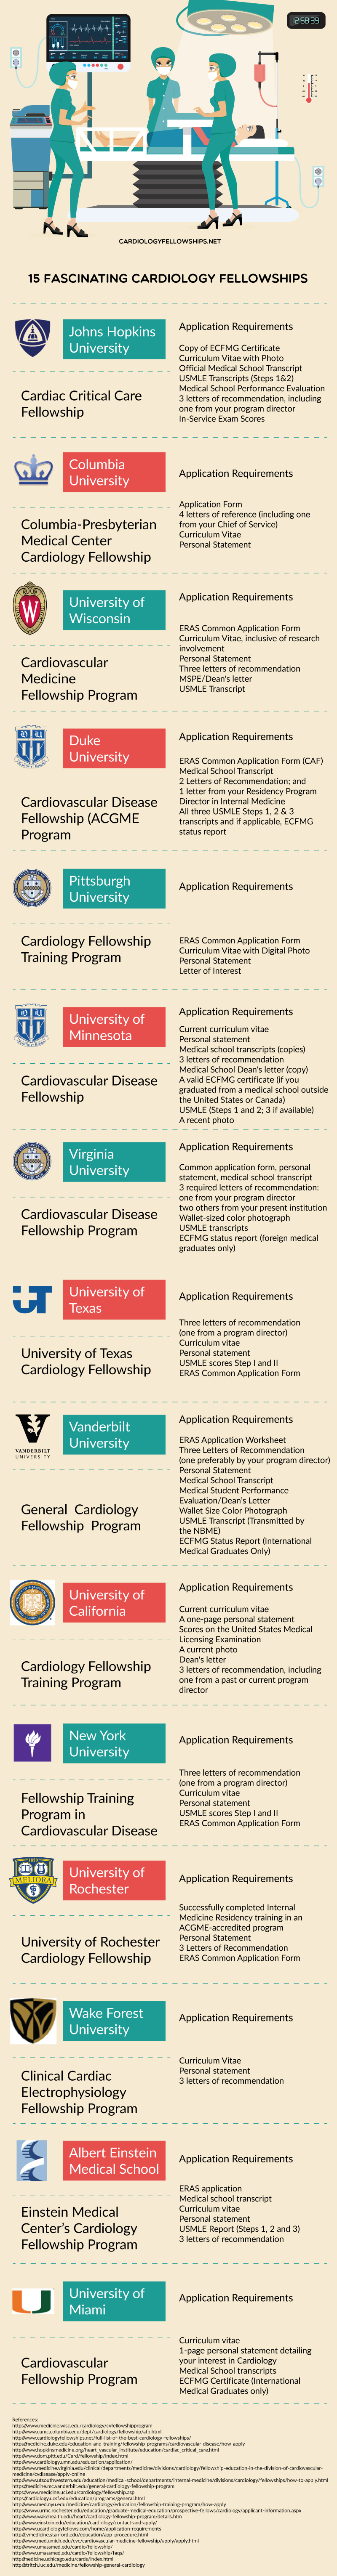 Cardiology Fellowship Personal Statement Writing Features